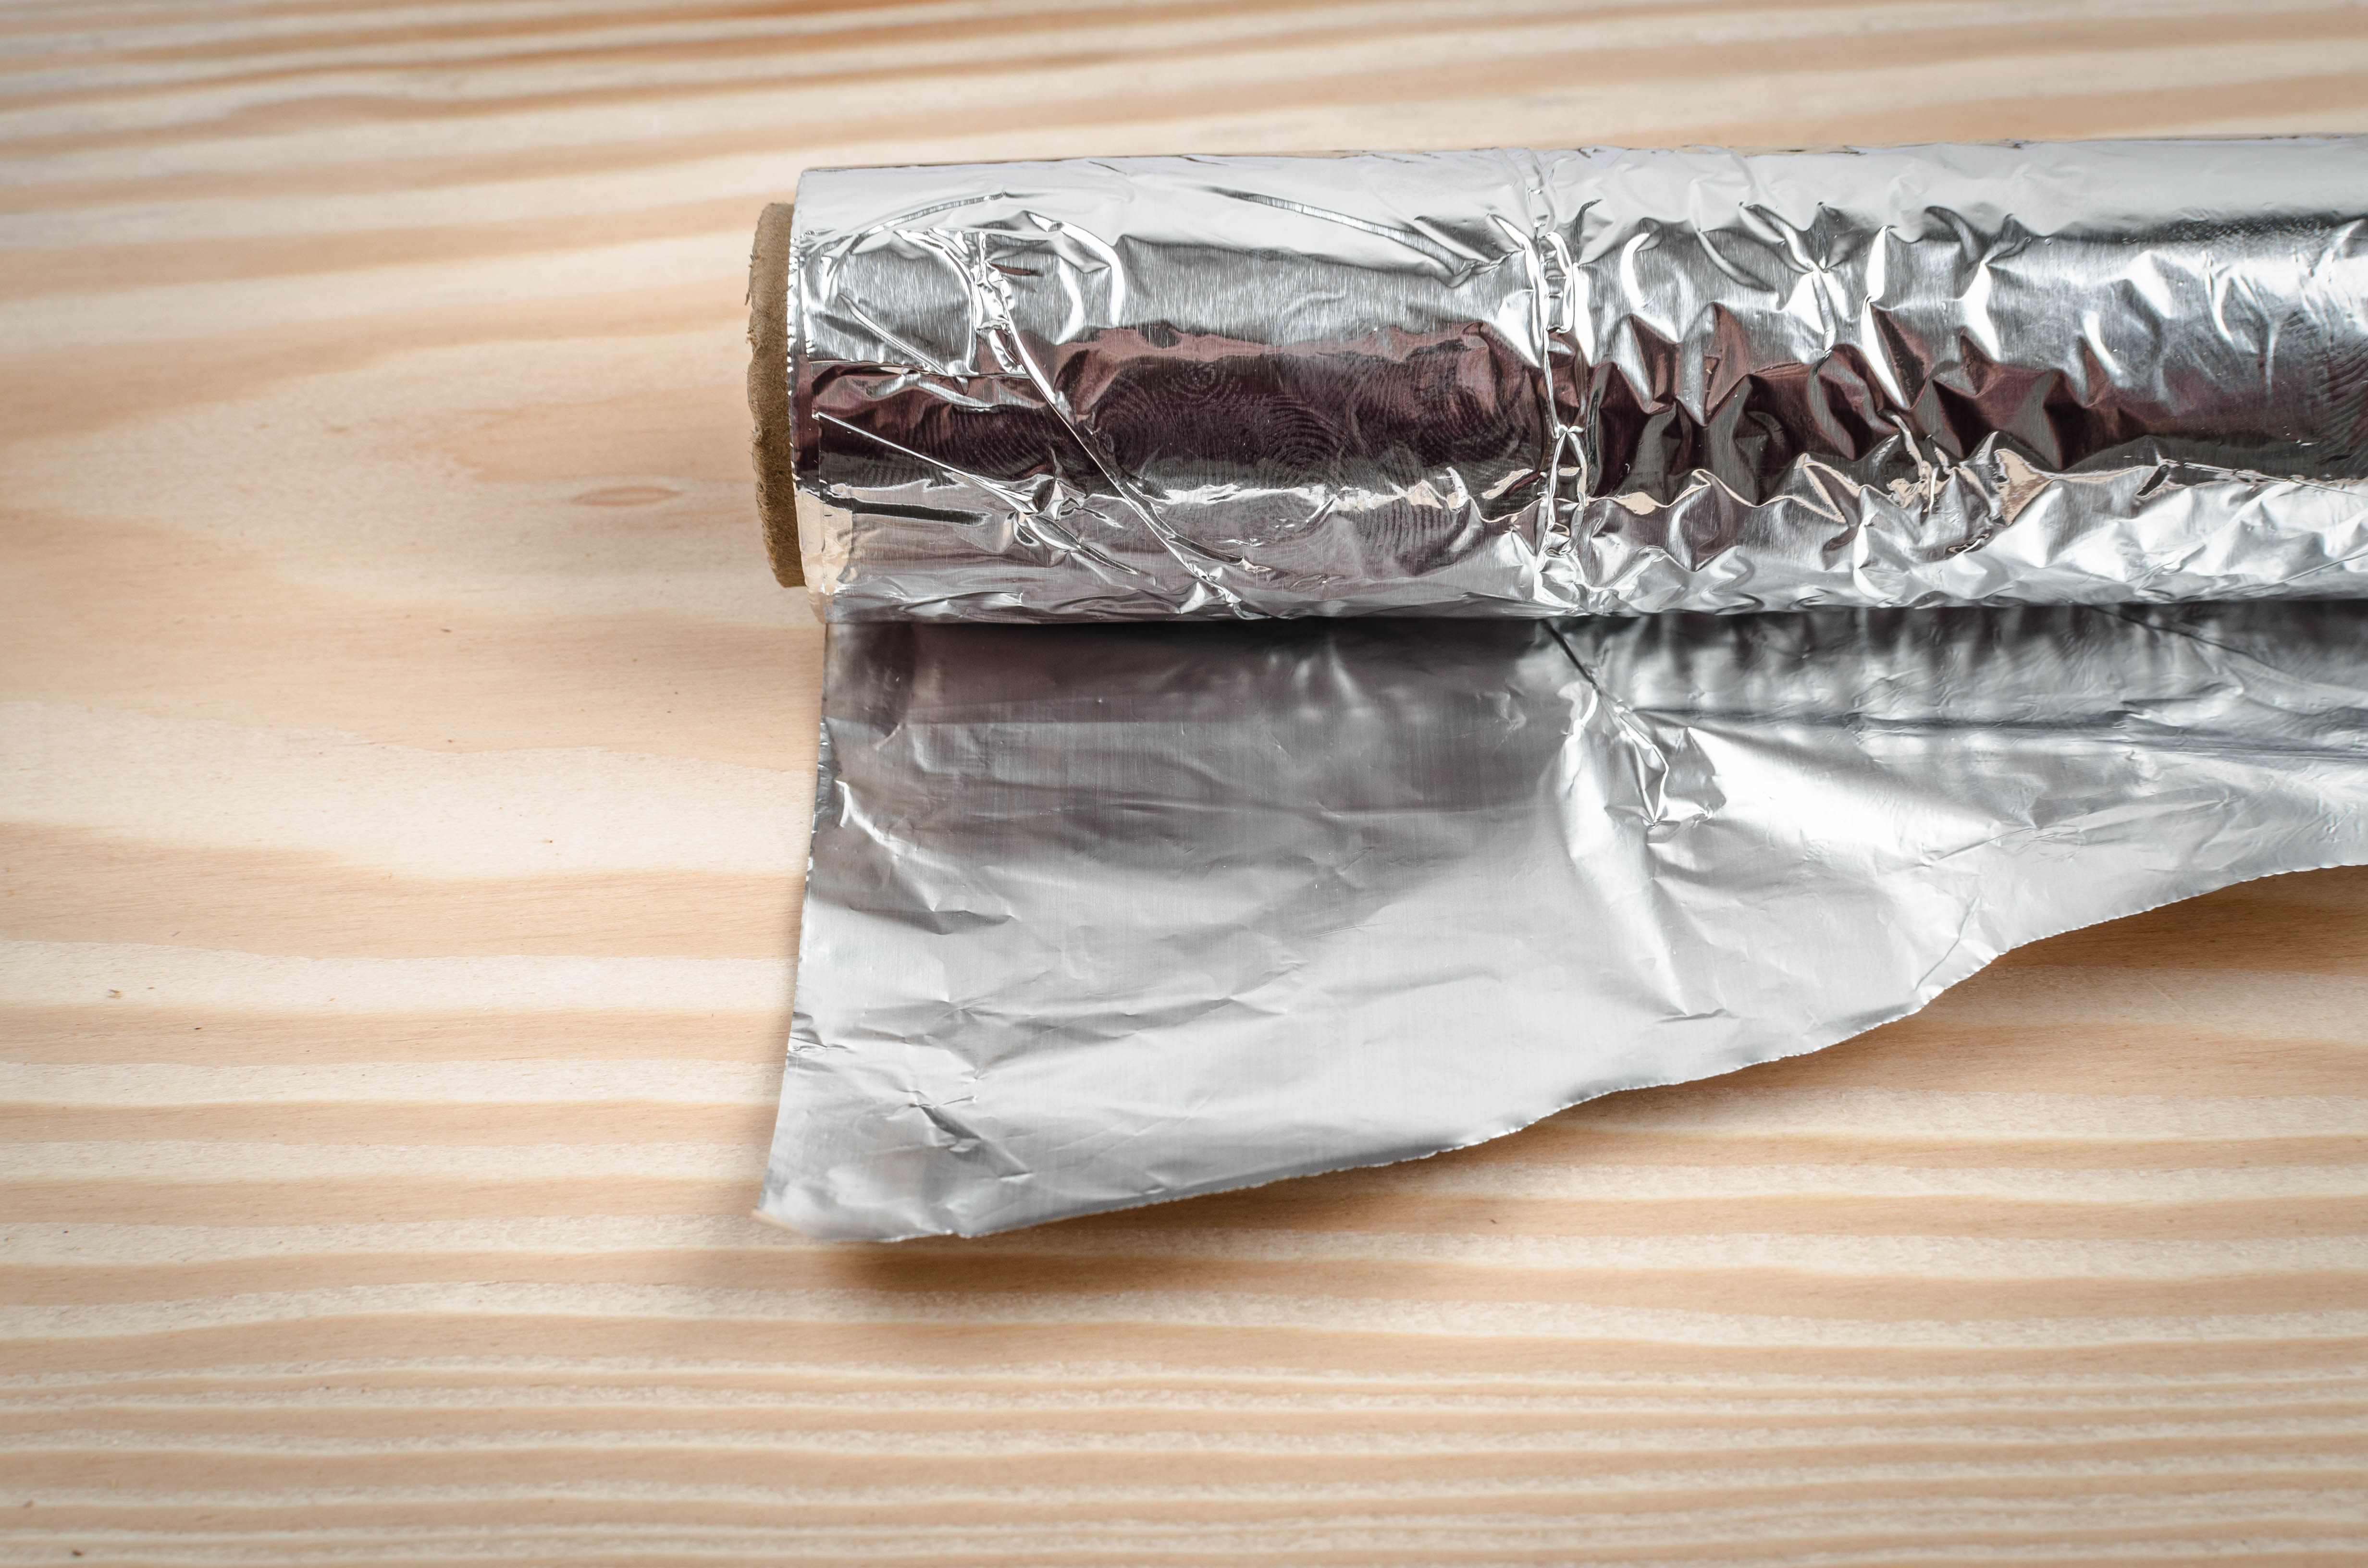 5 Unusual Uses For Aluminum Foil That Will Completely Blow